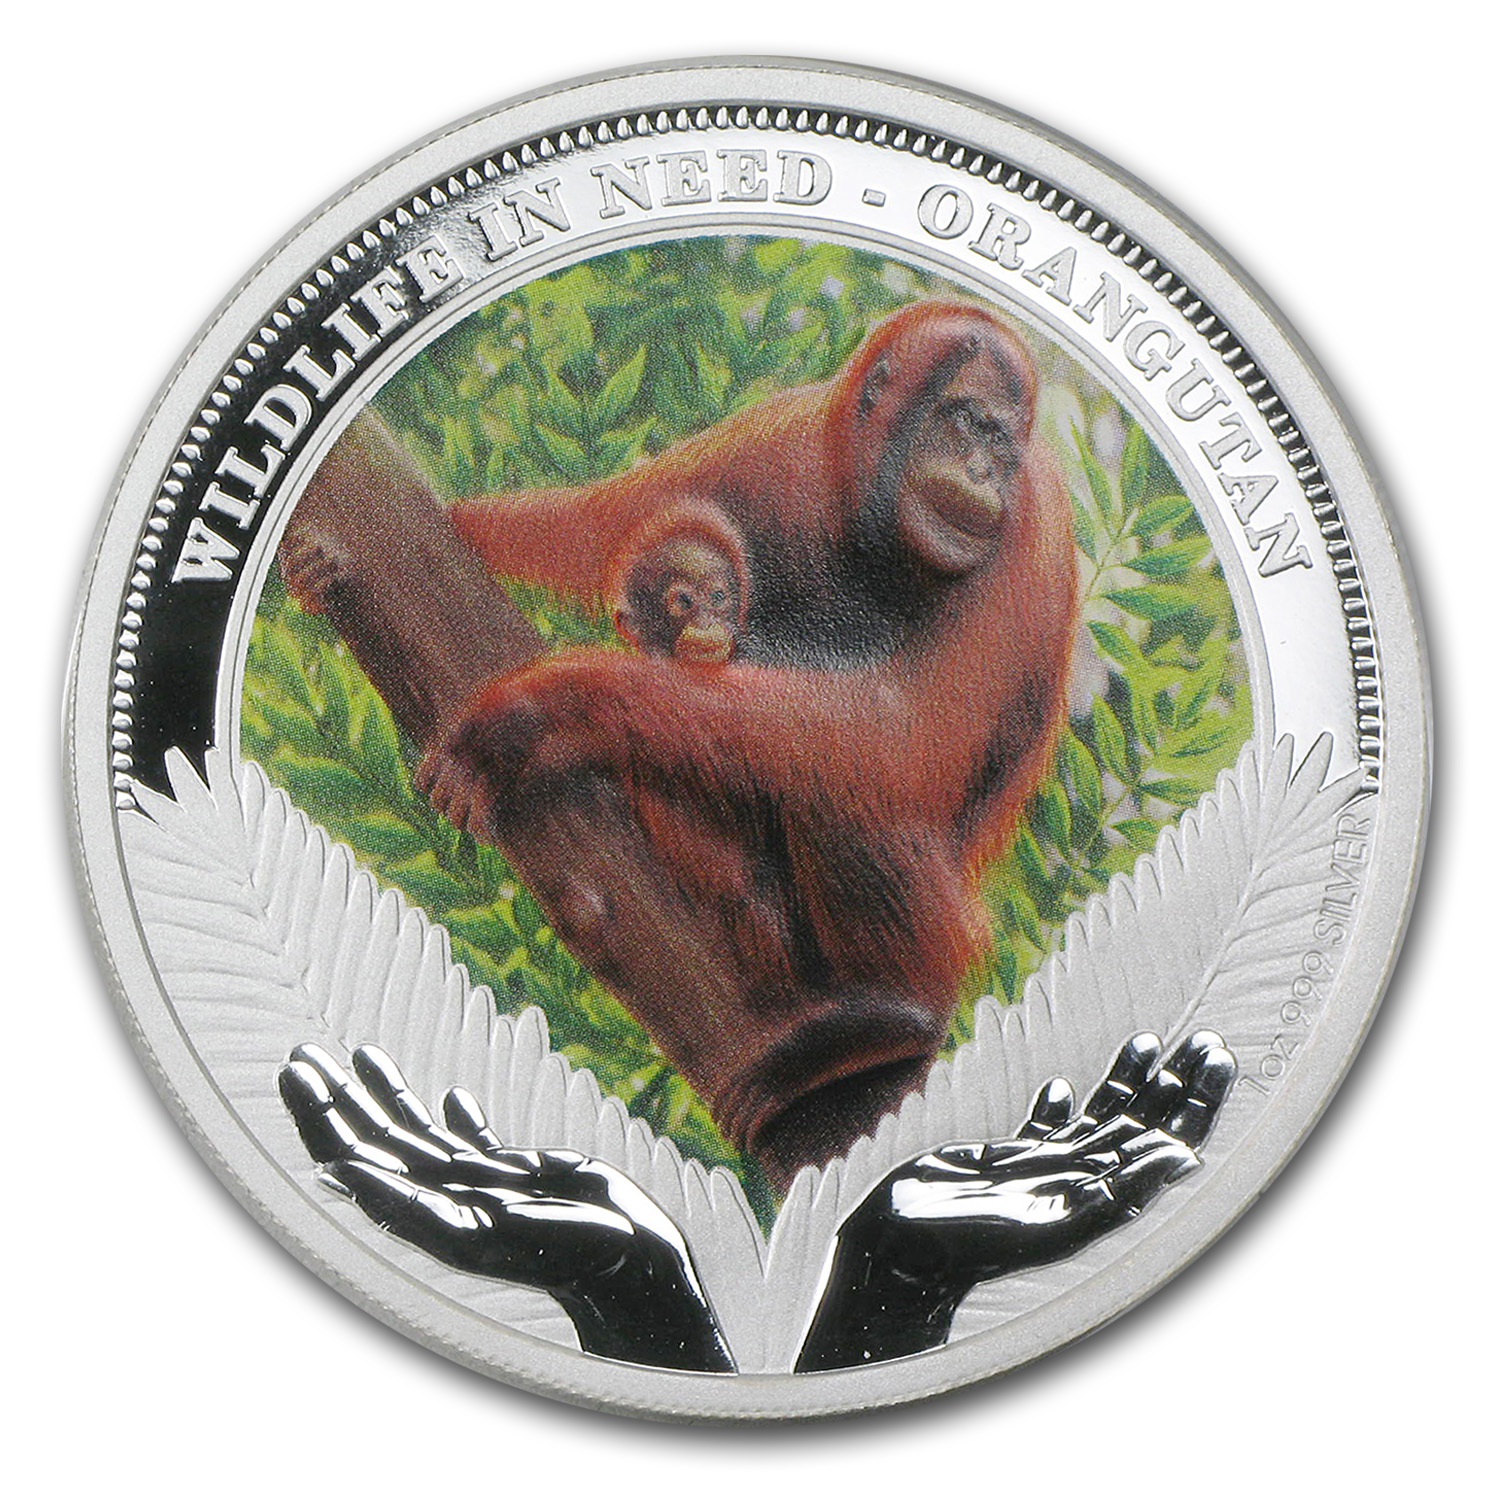 2011 Tuvalu 1 oz Silver Orangutan Proof